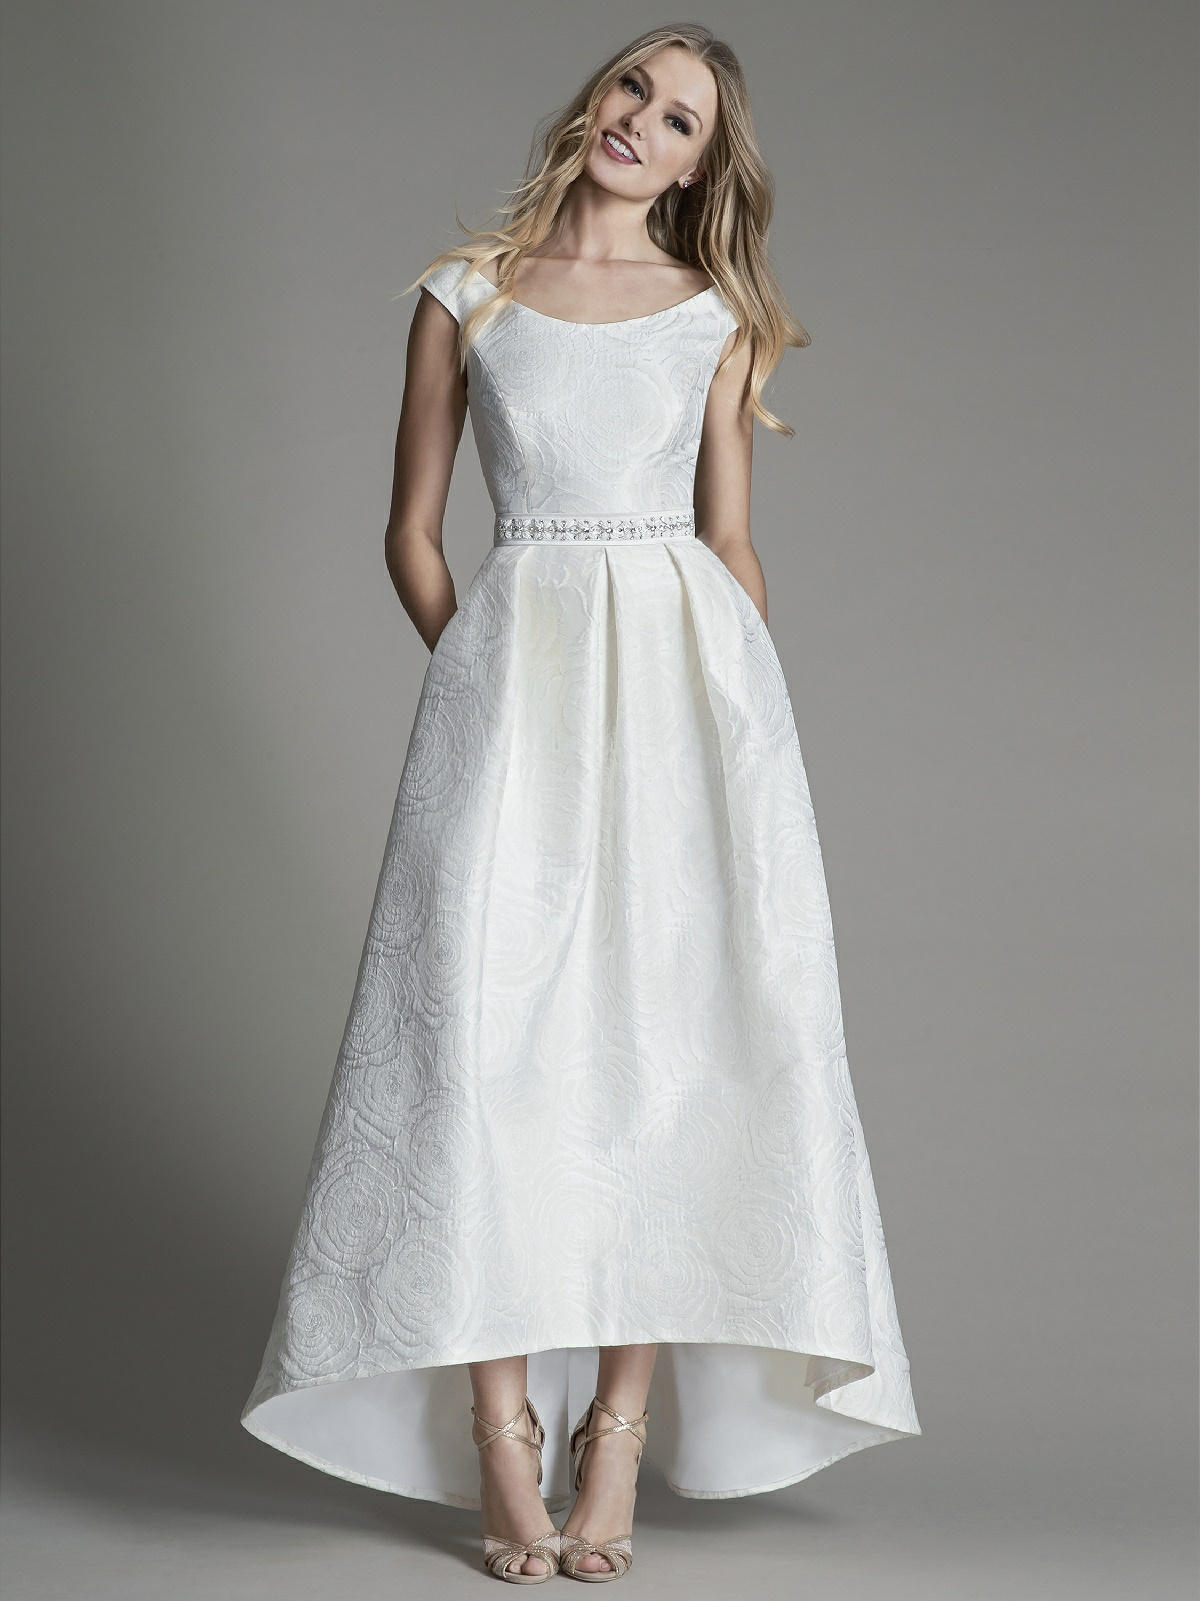 wedding dress showing off ankles